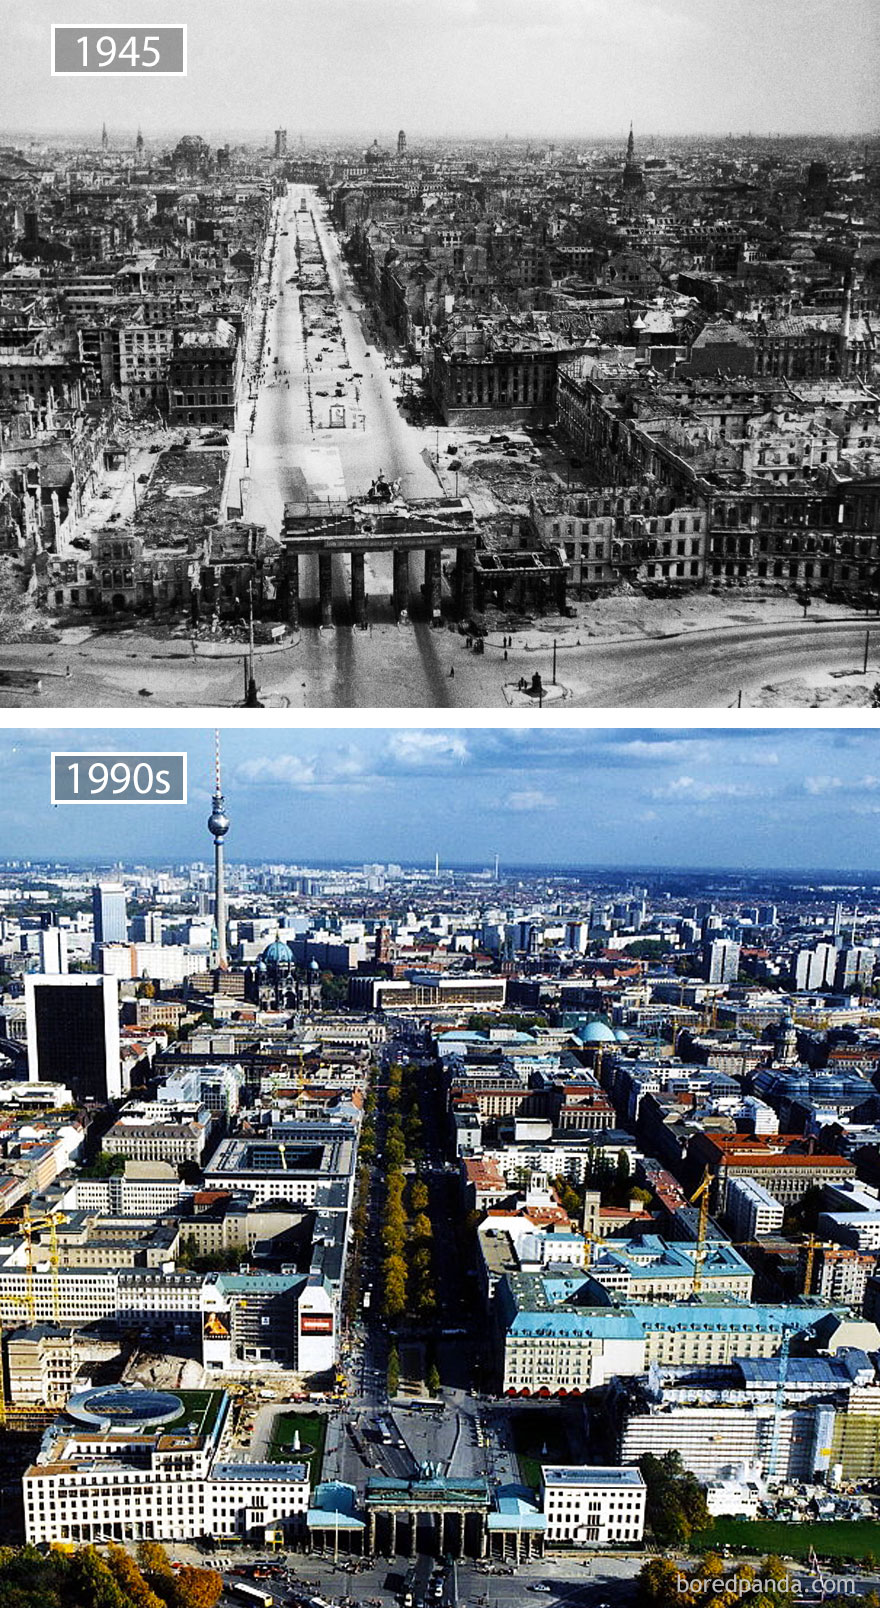 AD-How-Famous-City-Changed-Timelapse-Evolution-Before-After-14